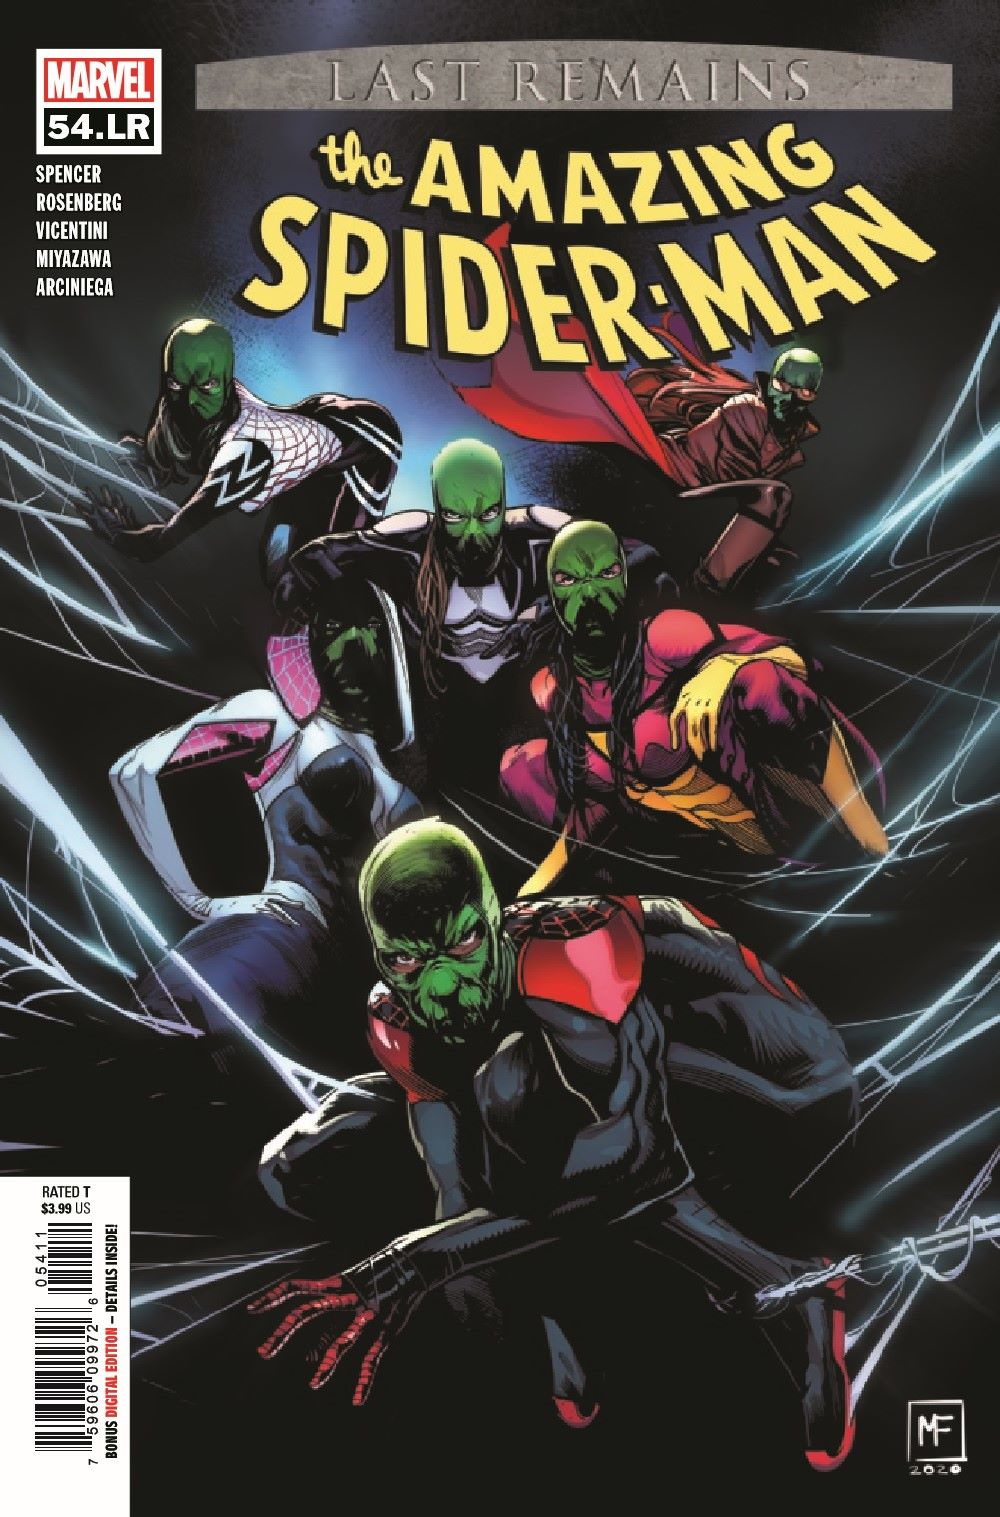 ASMLR2020054_Preview-1 ComicList Previews: THE AMAZING SPIDER-MAN #54.LR